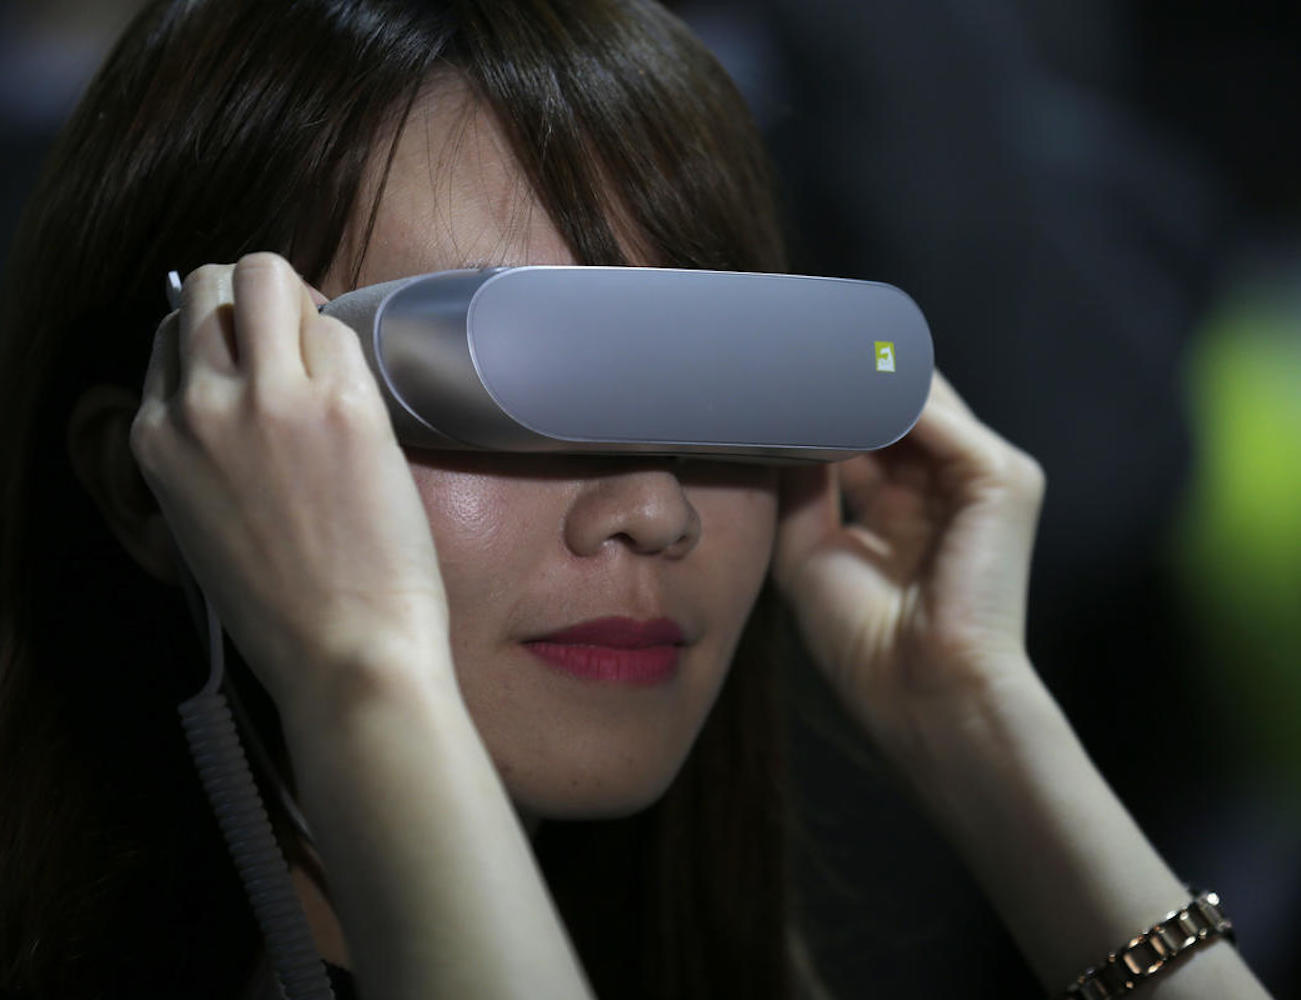 LG 360 VR – Mobile Virtual Reality Just Like Reading Glasses